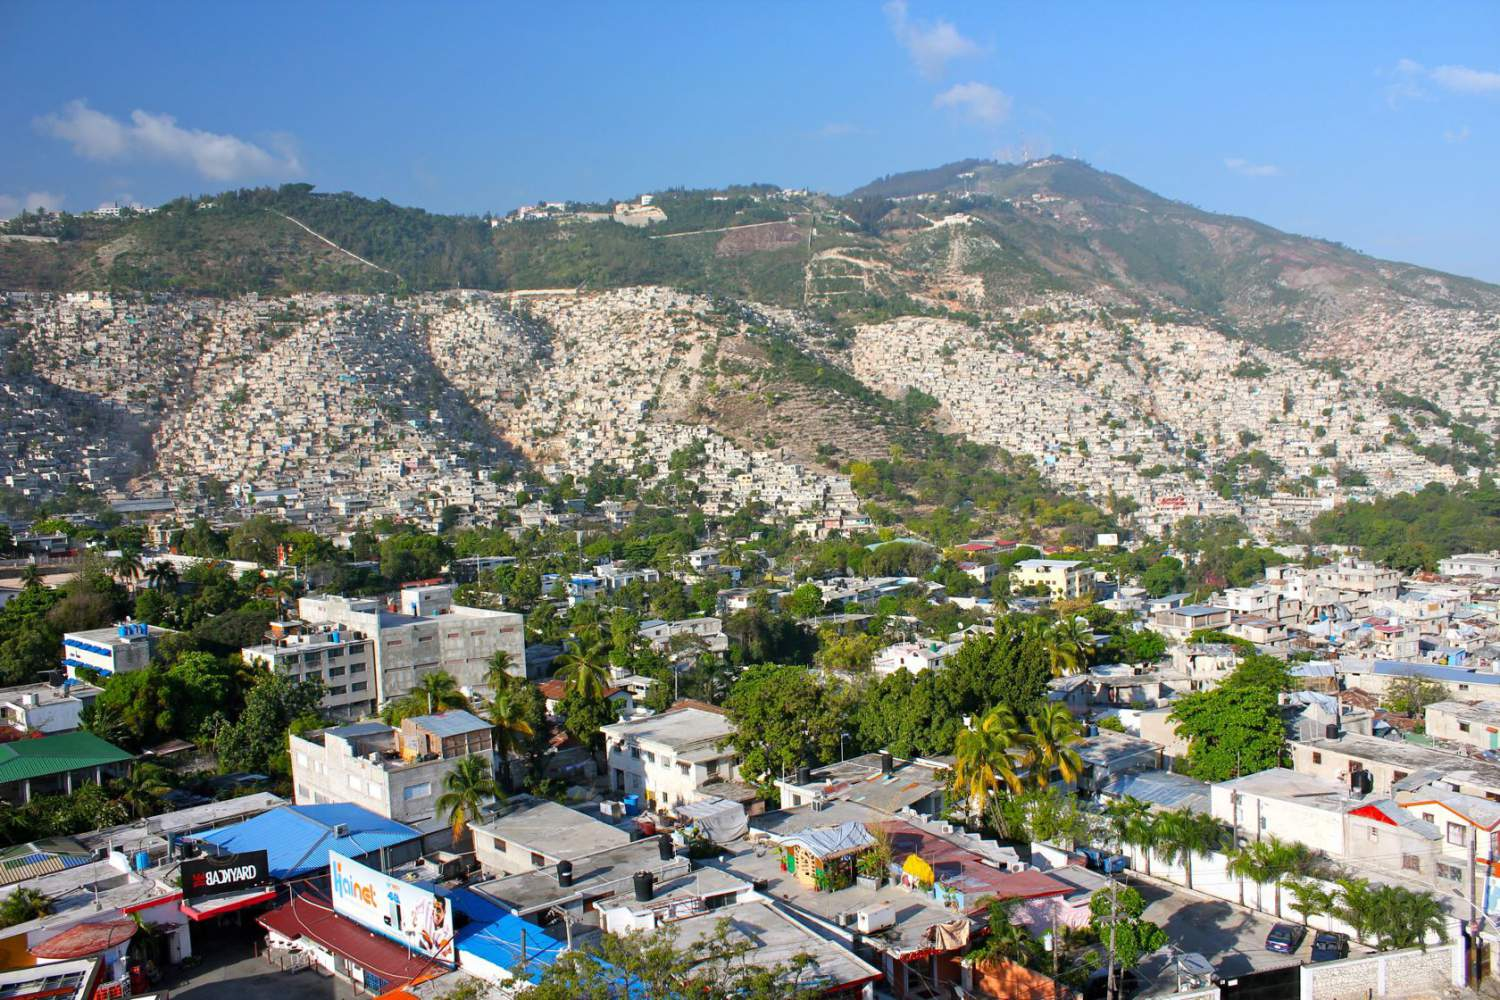 a haiti vacation experience Haiti is a piece of paradise taken straight from the movies, with turqoise waves gently lapping at golden shores, misty mountaintops peeking through lush vegetation and spectacular sunsets blanketing the landscape in vivid color.